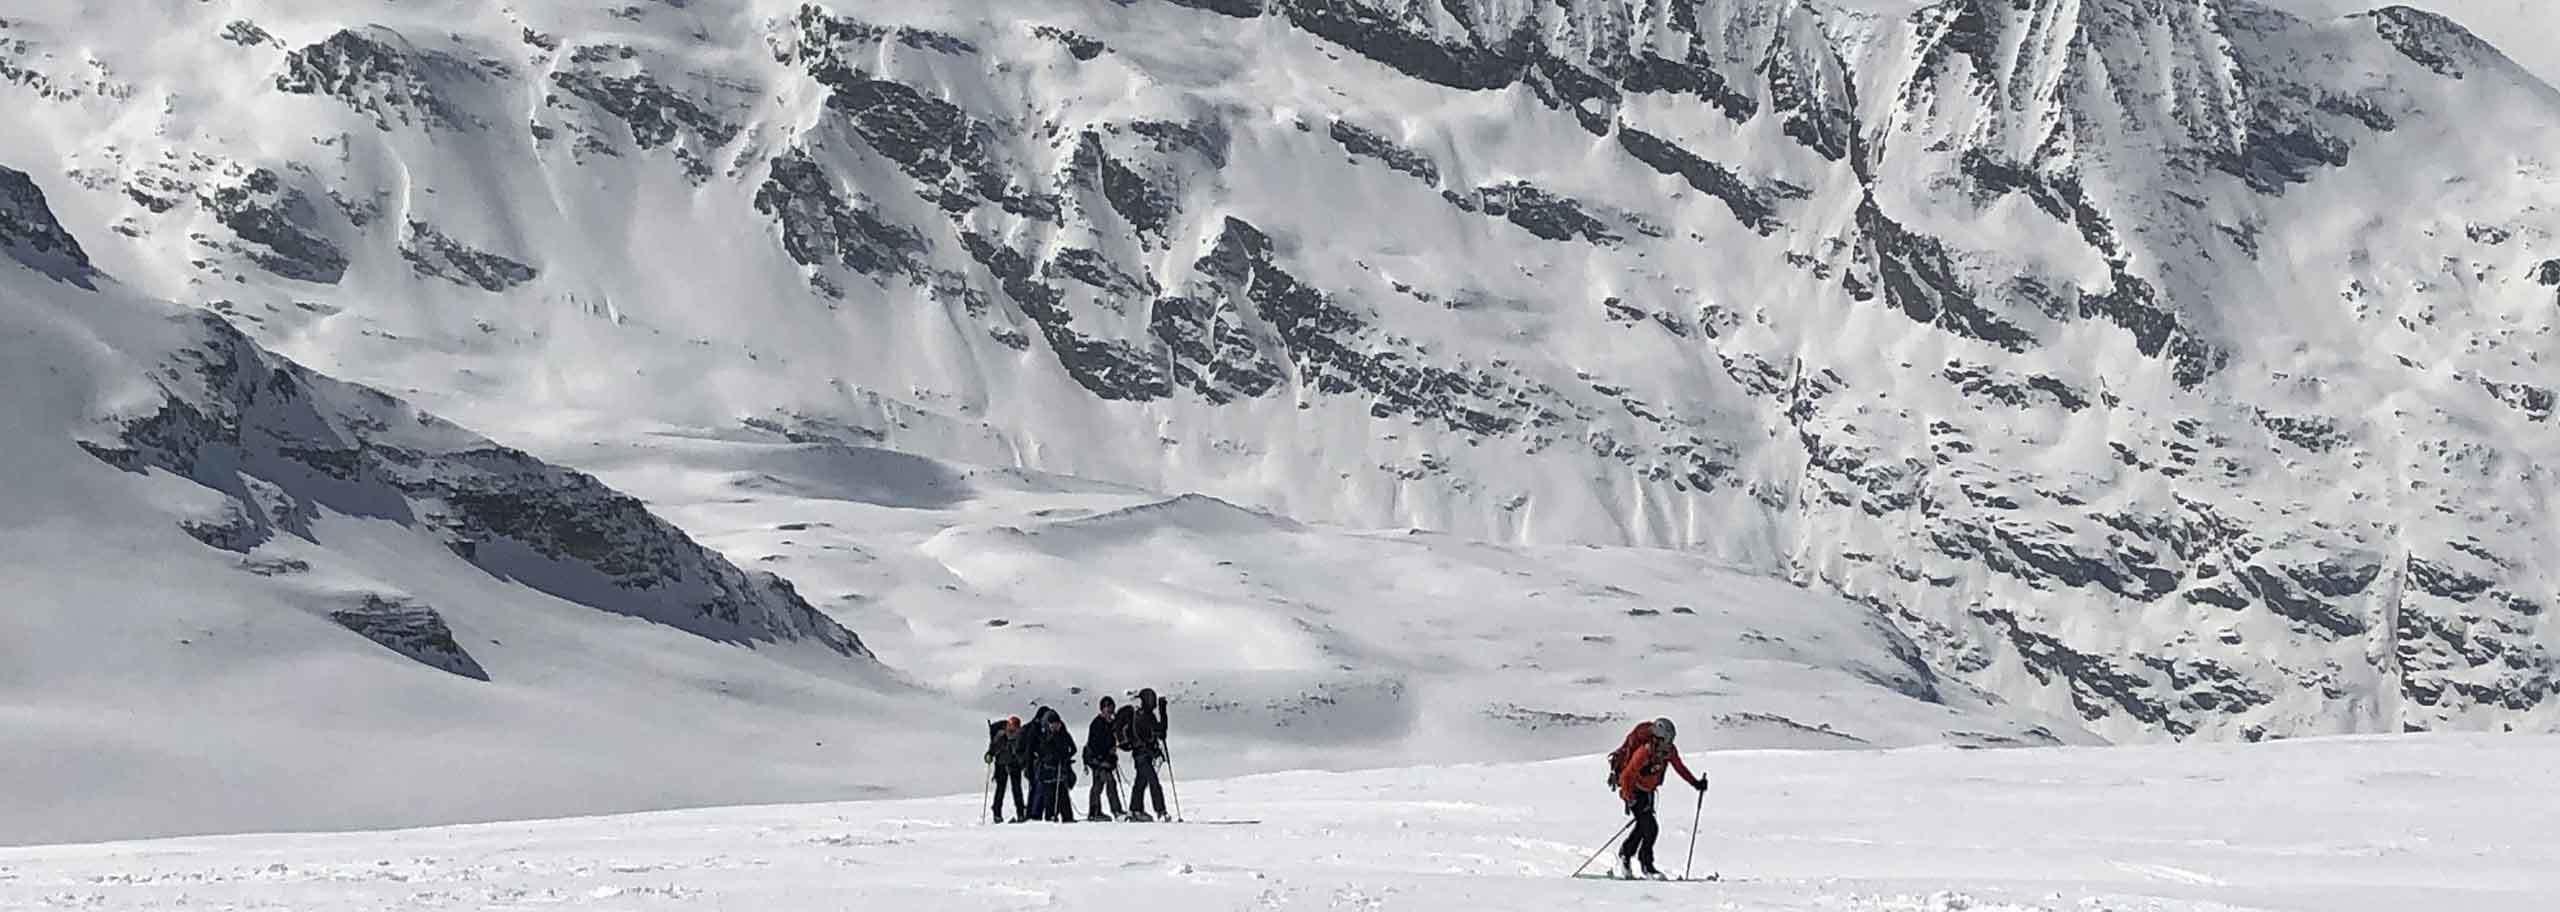 Ski Mountaineering in Cogne with Mountain Guide